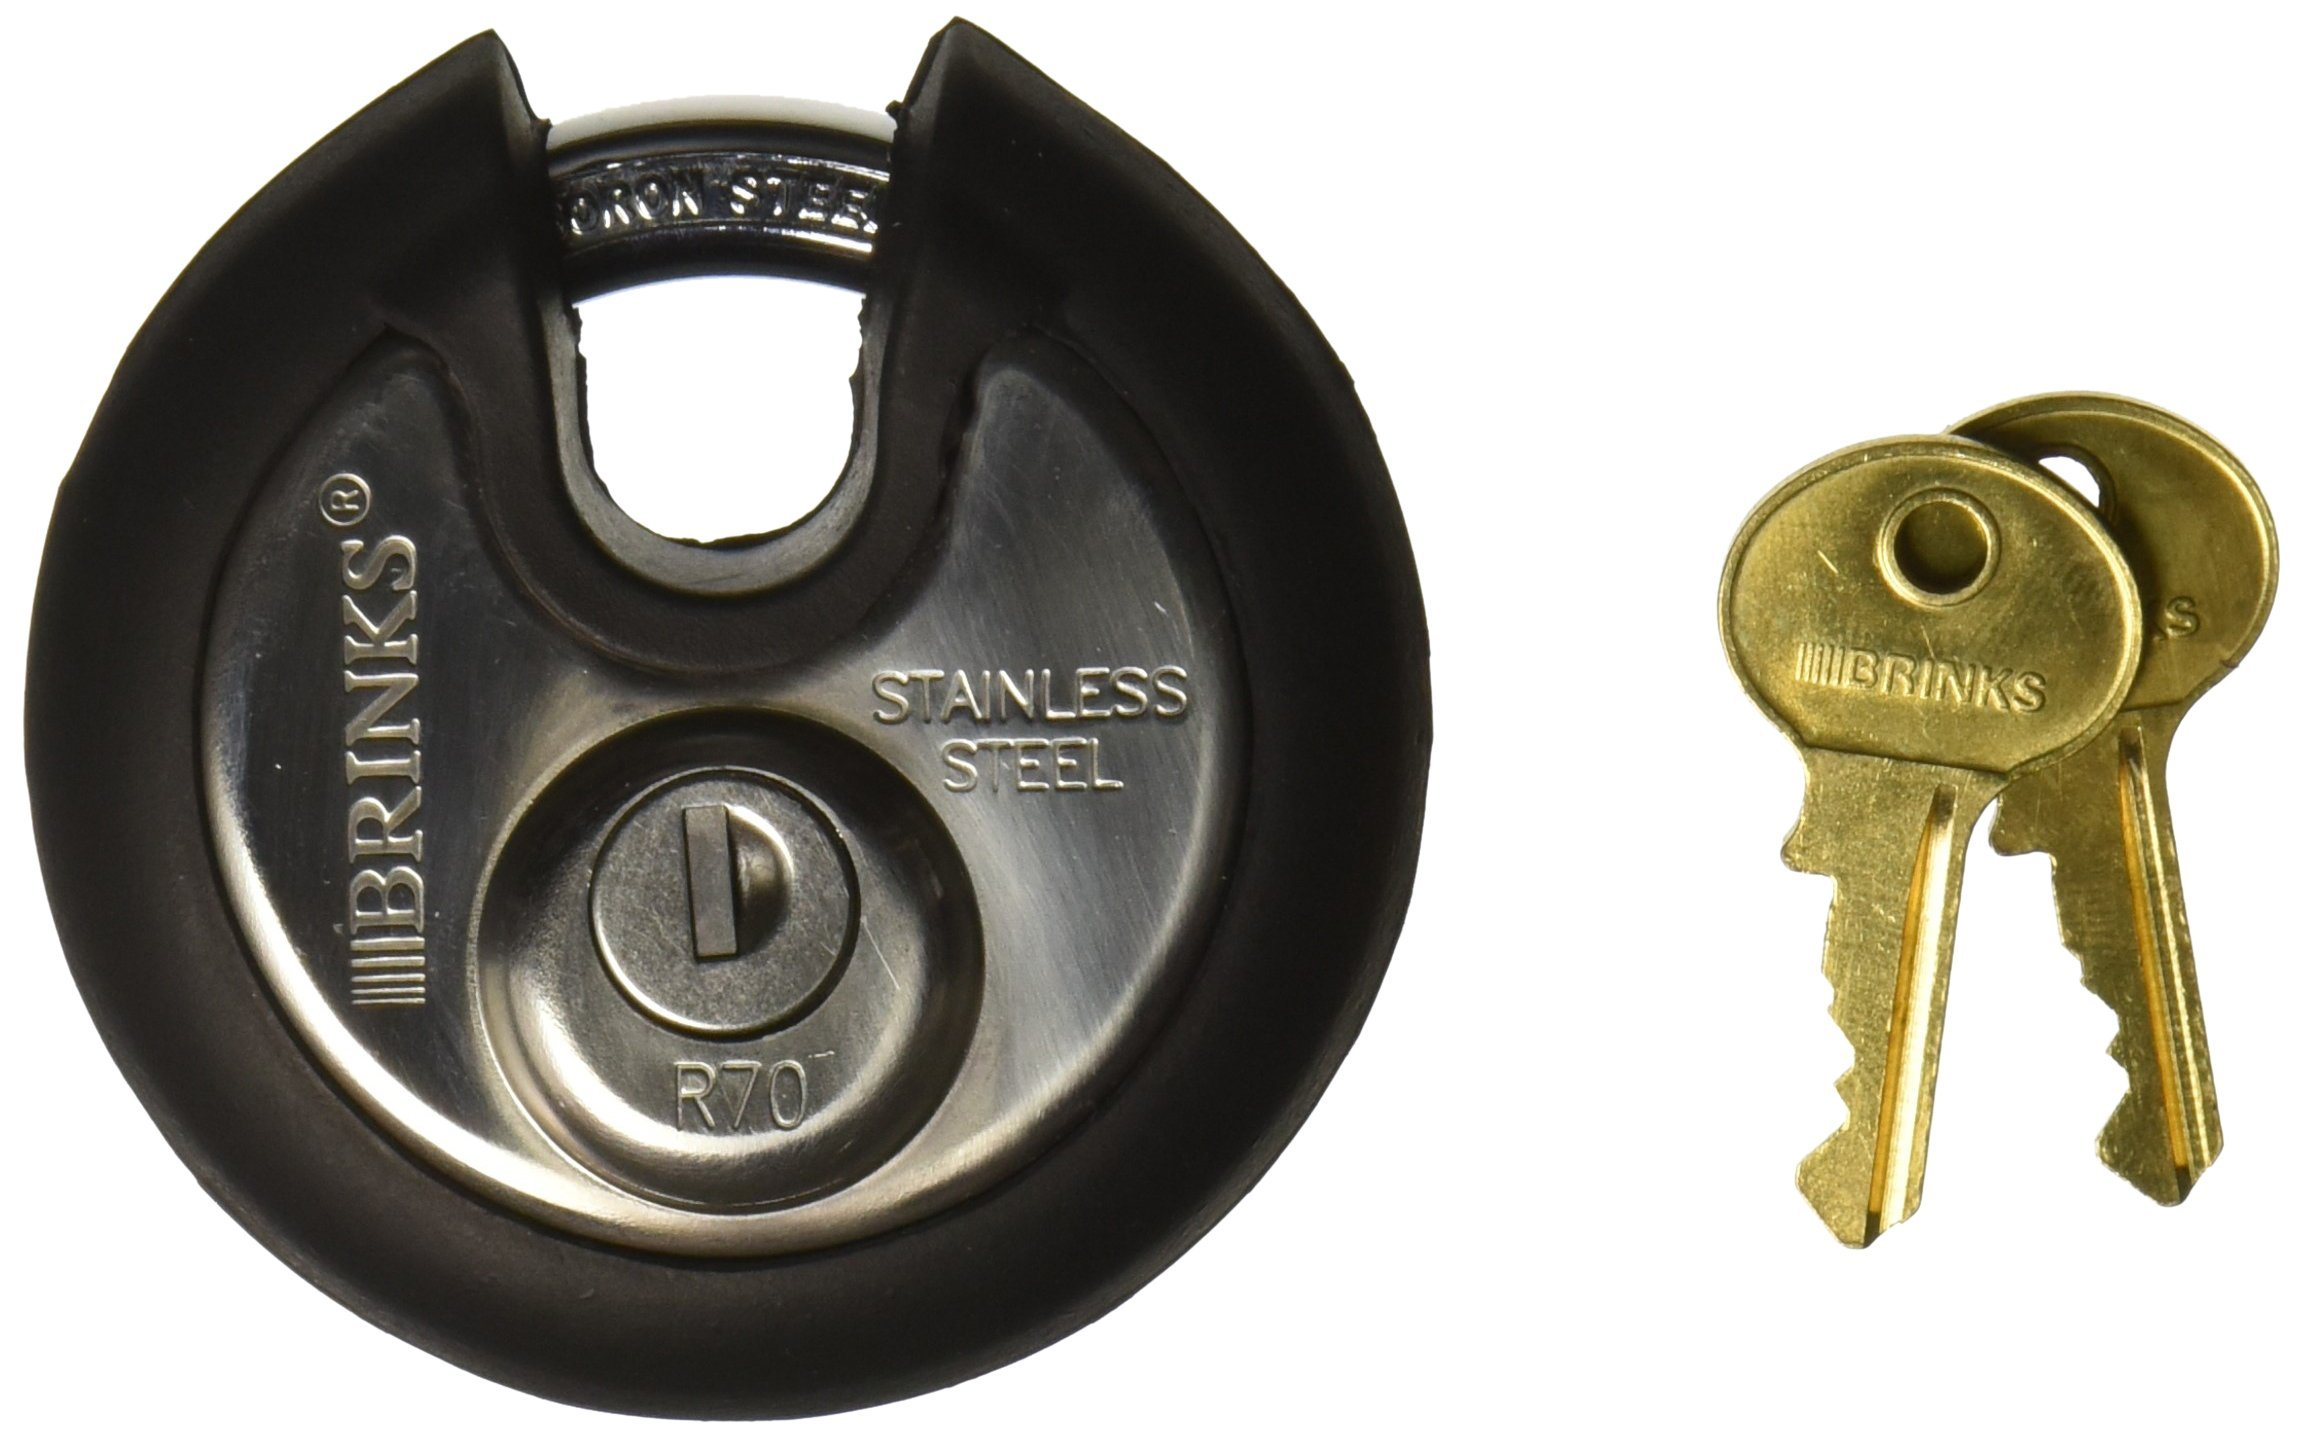 Brinks 673-70001 Commercial Discus Lock with Boron Shackle